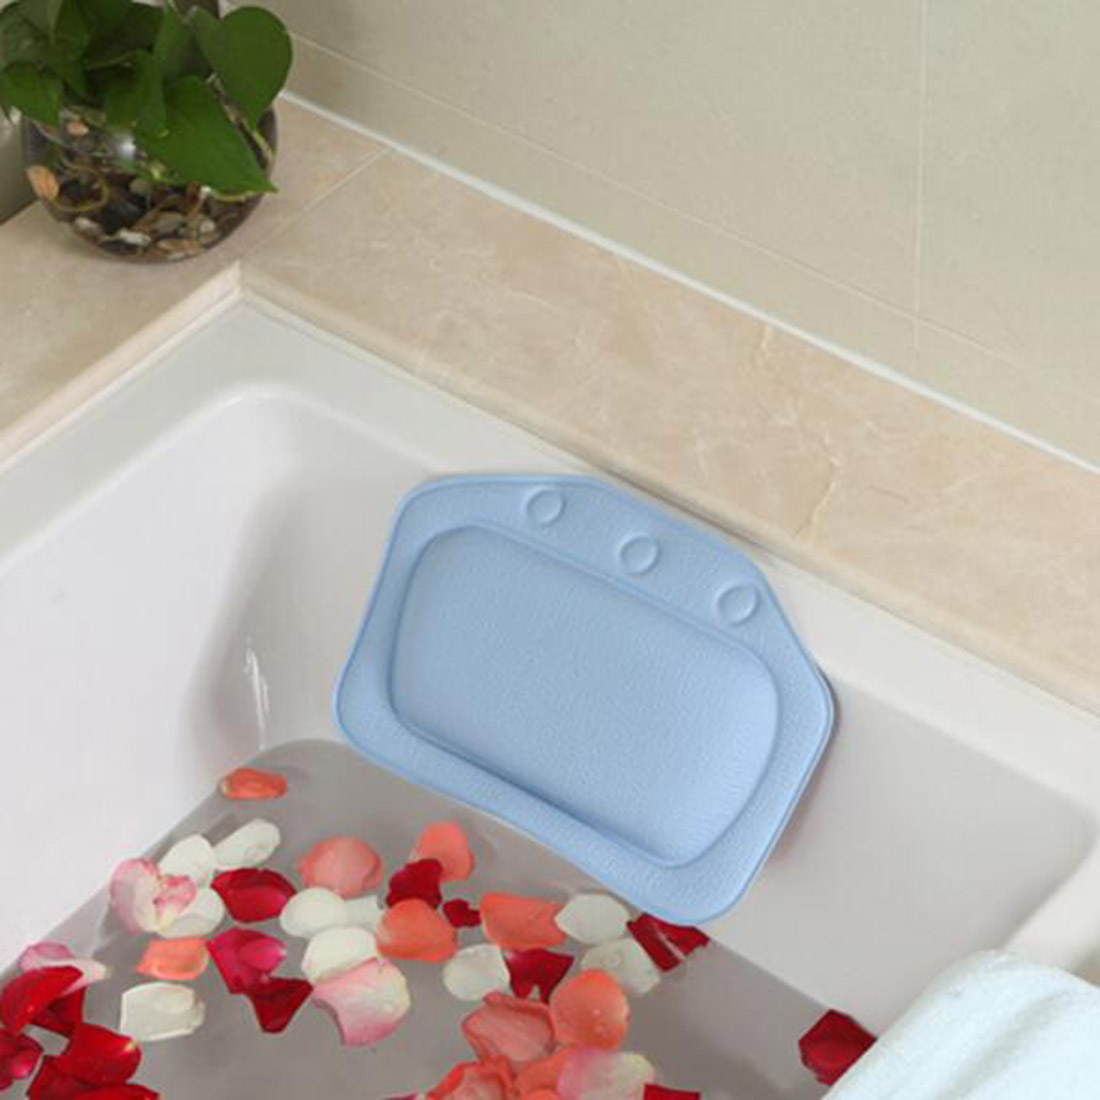 Bathtub Backrest Headrest - High quality household comfortable colorful bathroom supplies bathtub pillows headrest waterproof bath pillows 31x21cm china